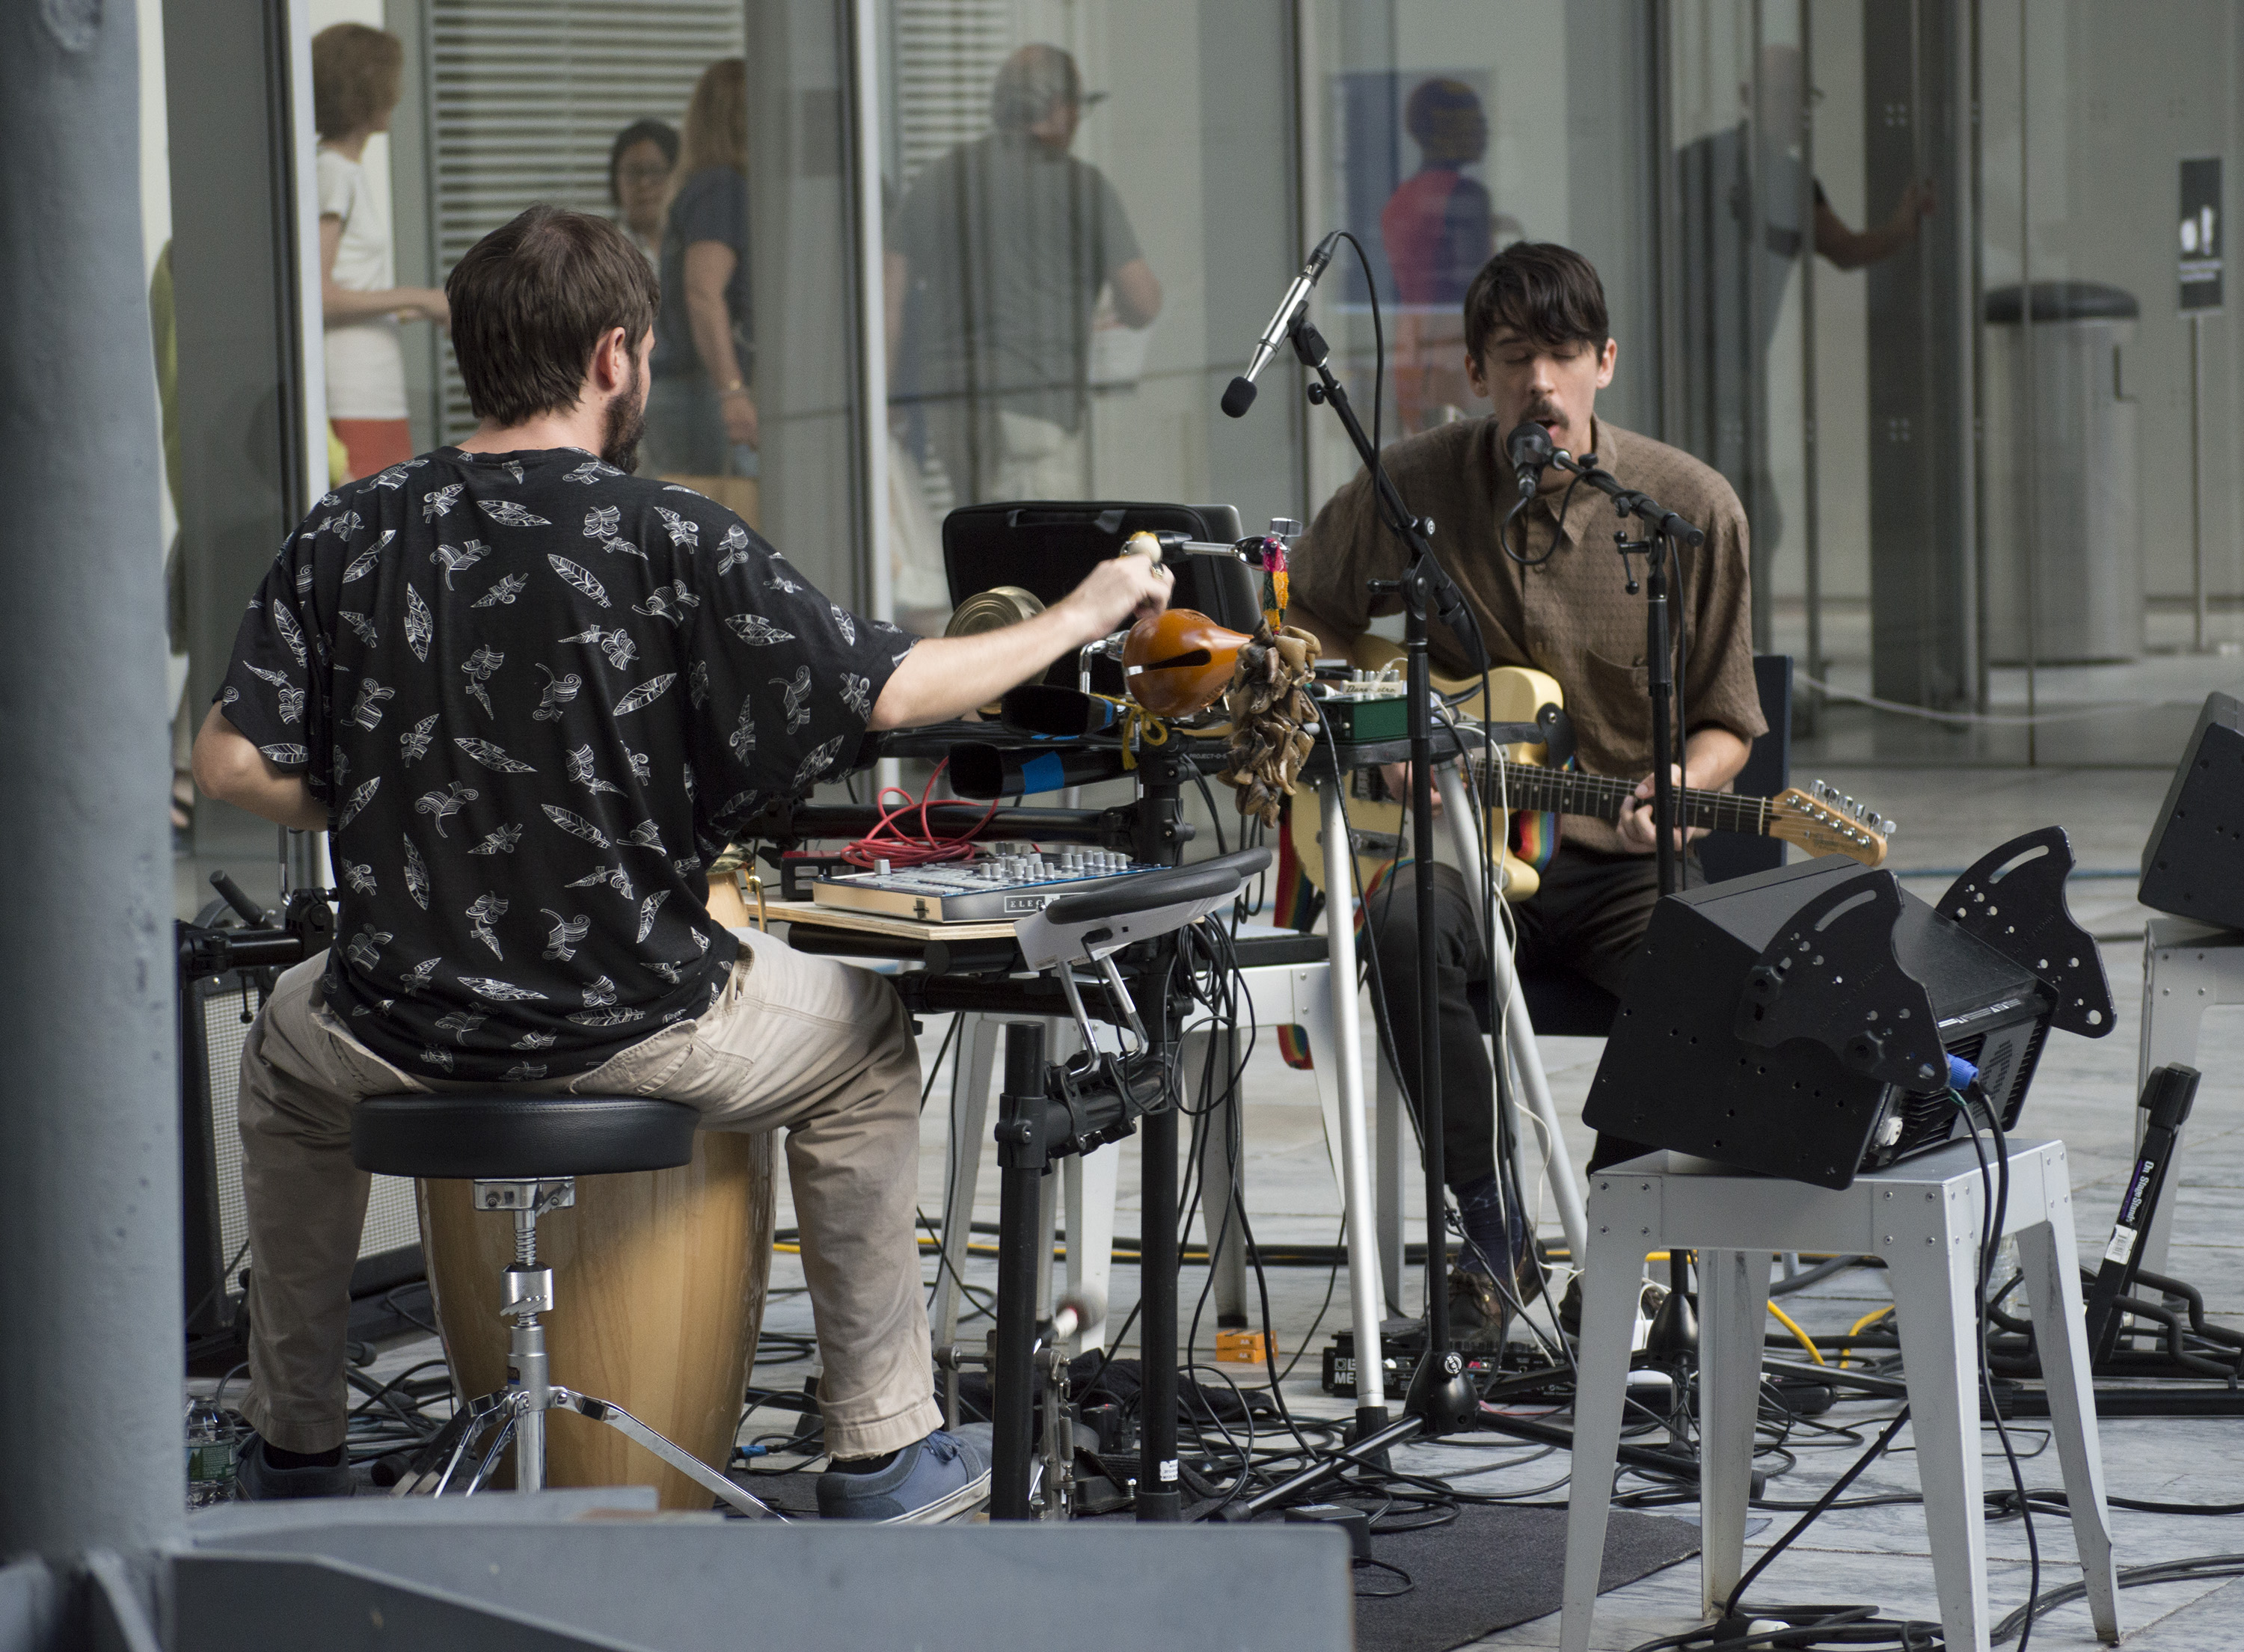 Sun Araw performs in the garden at MoMa Summer Thursdays on August 18, 2016